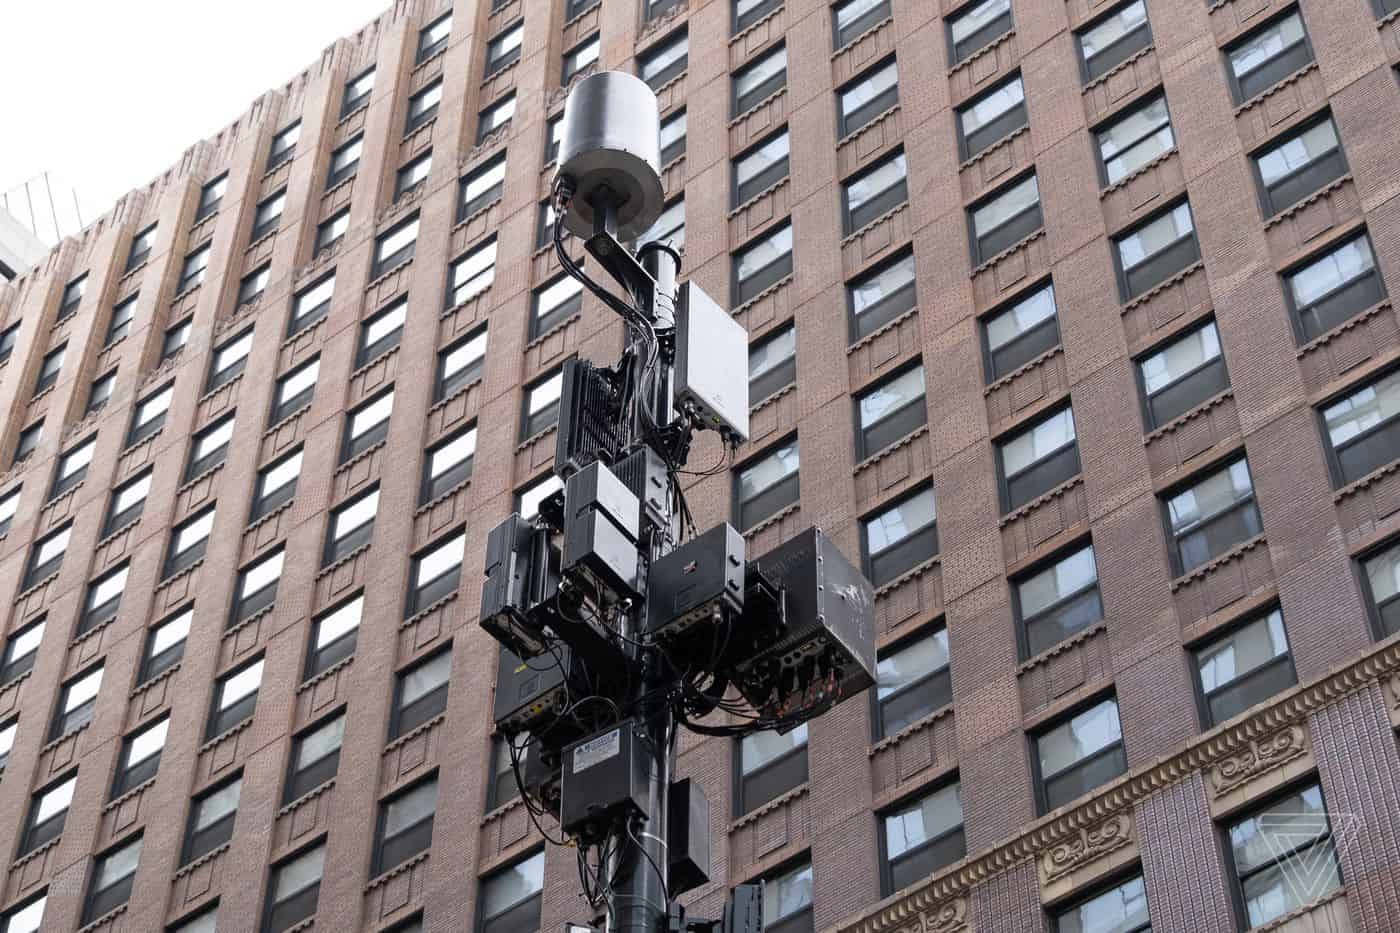 Is it dangerous to live near cell tower? Cell tower in city